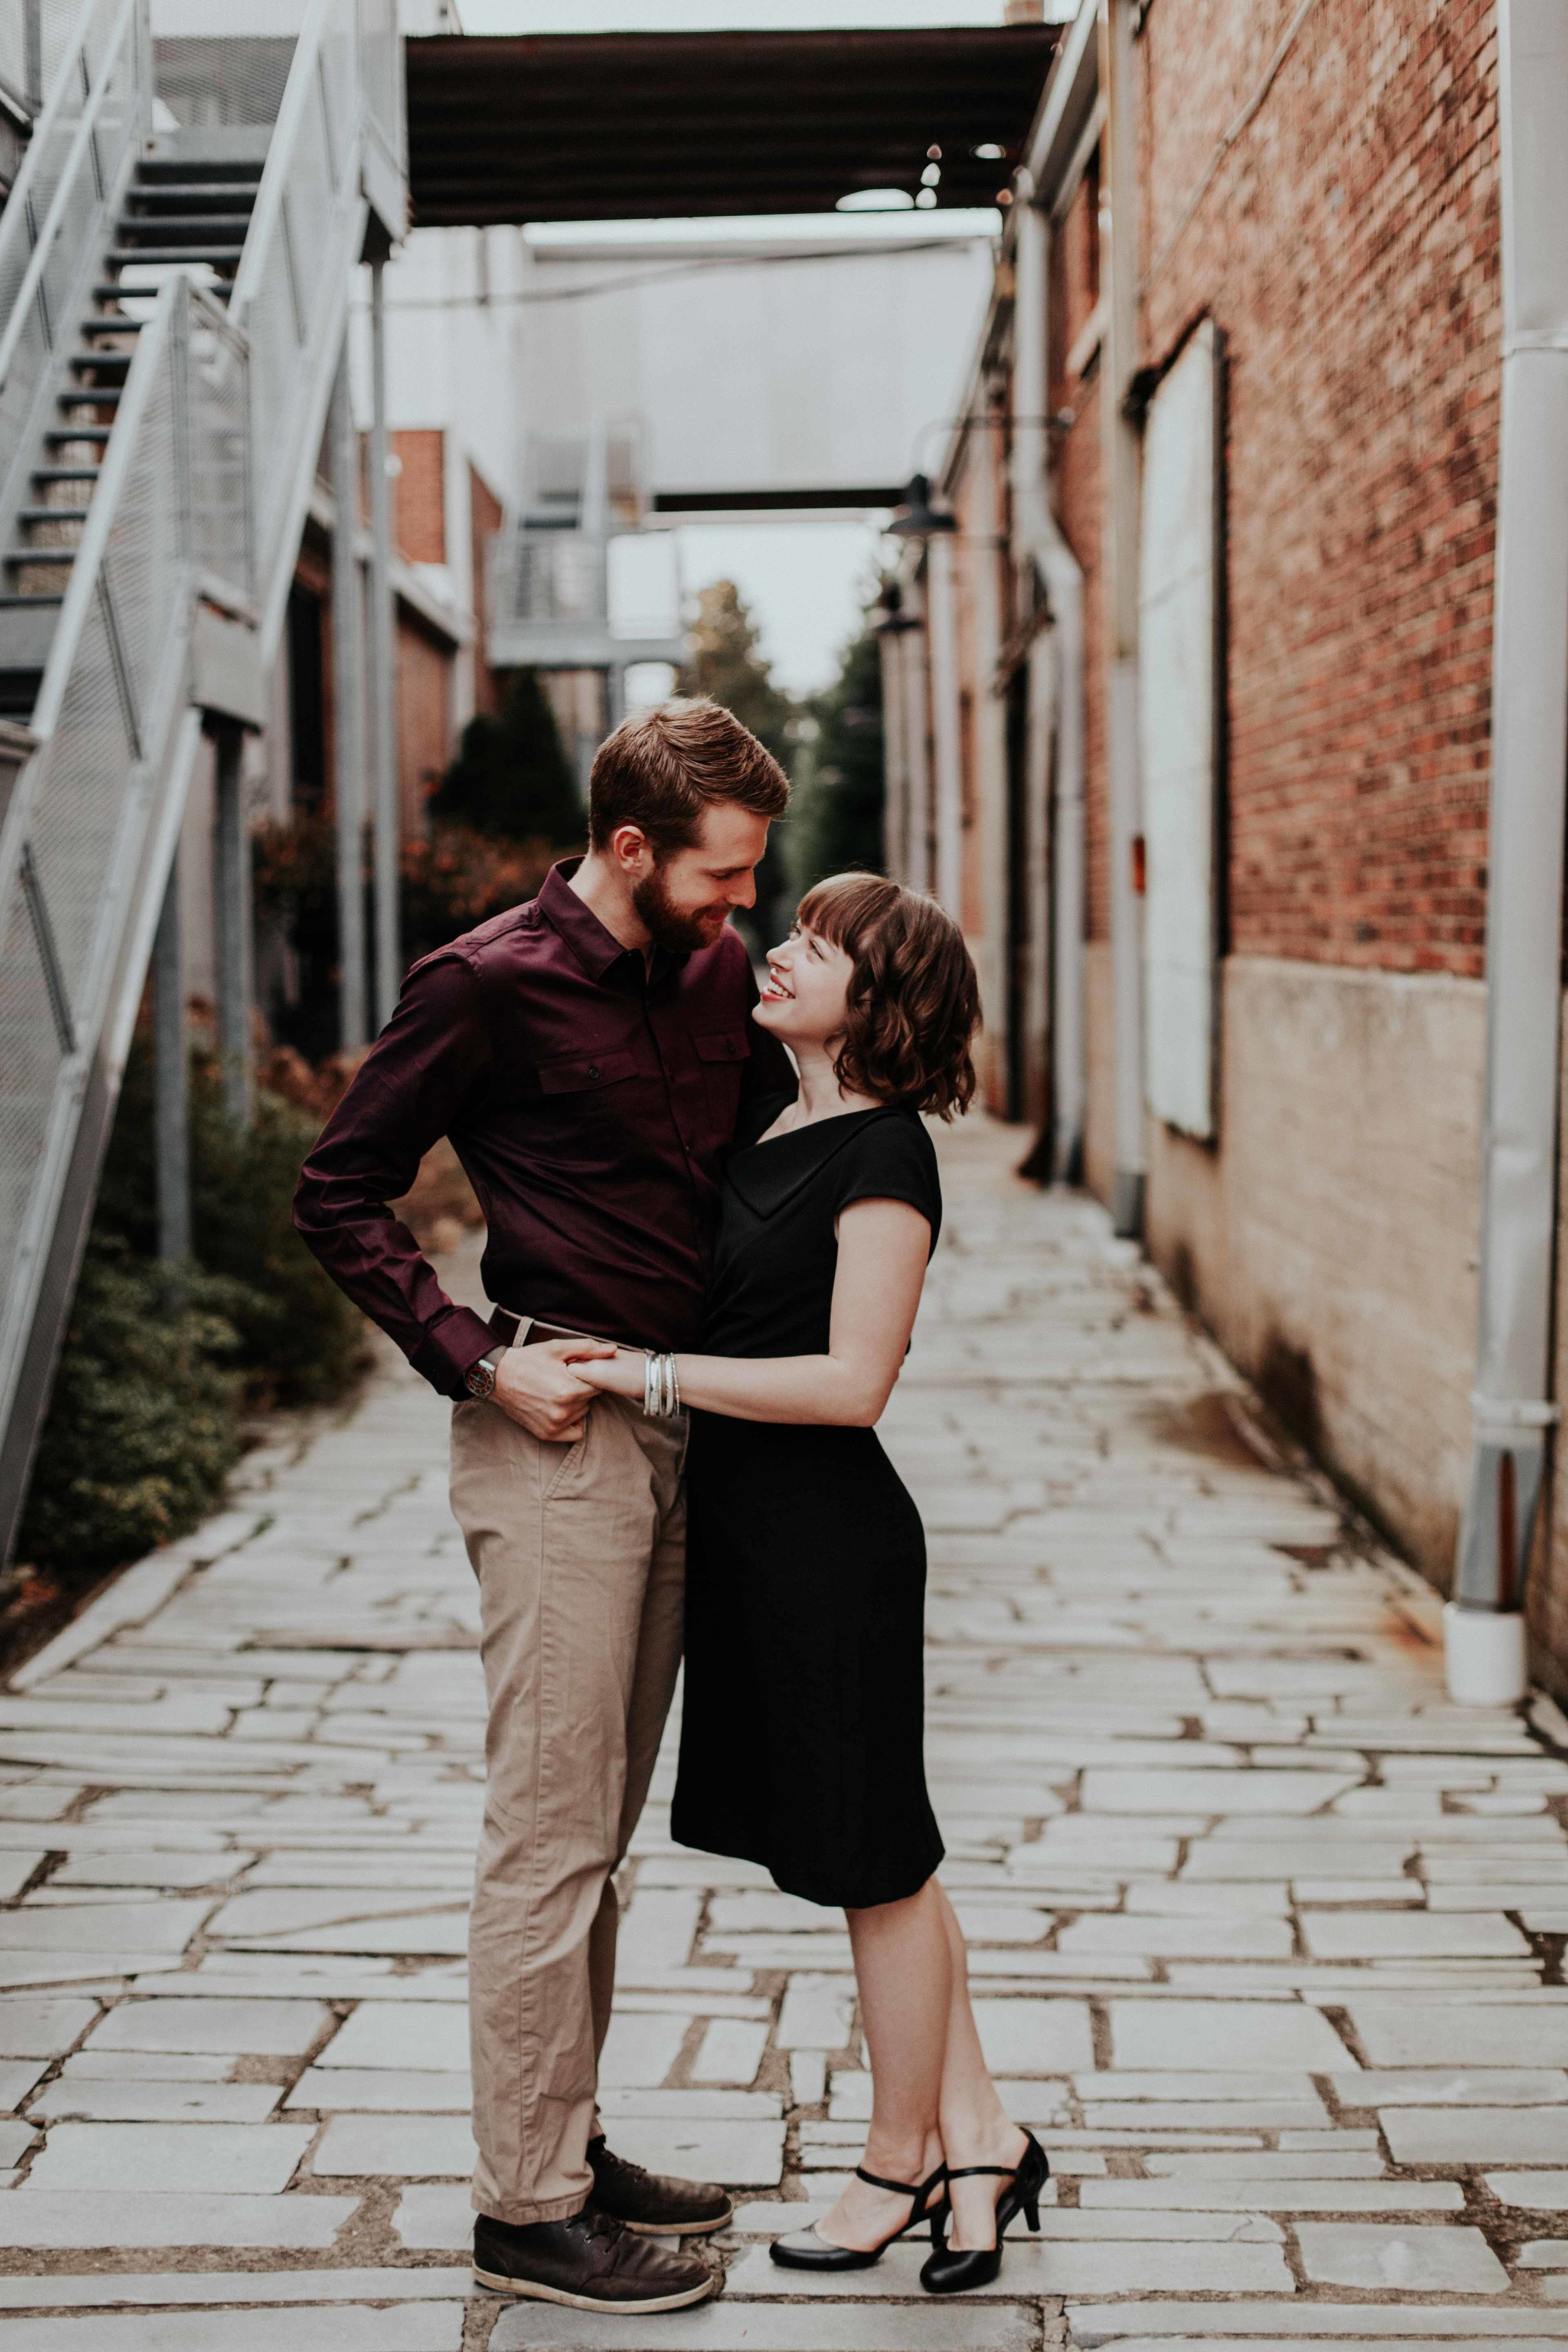 best engagement and wedding photographer nashville tn emily anne photography